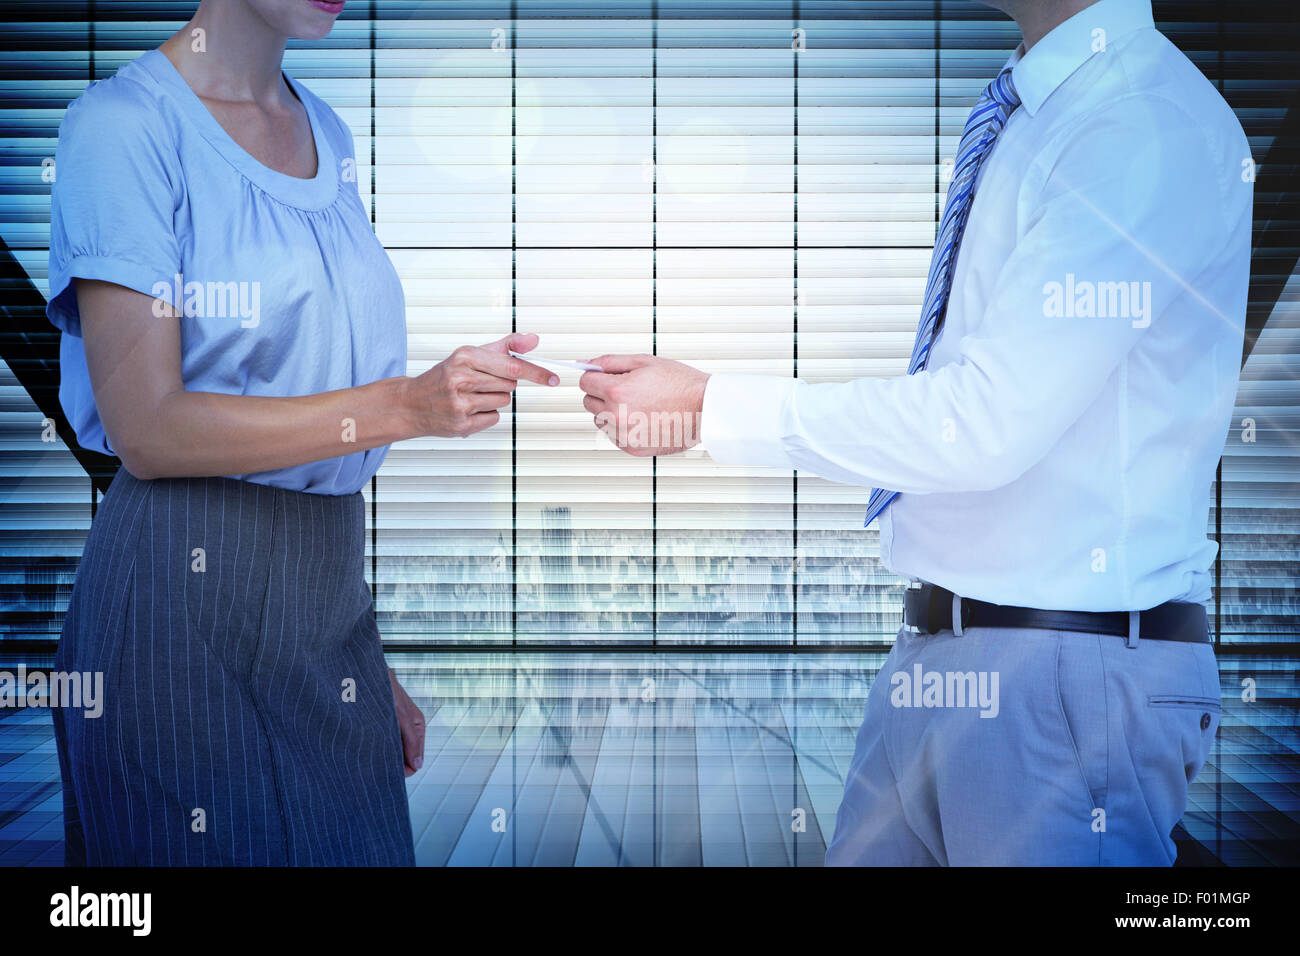 Composite image of business people exchanging business card - Stock Image